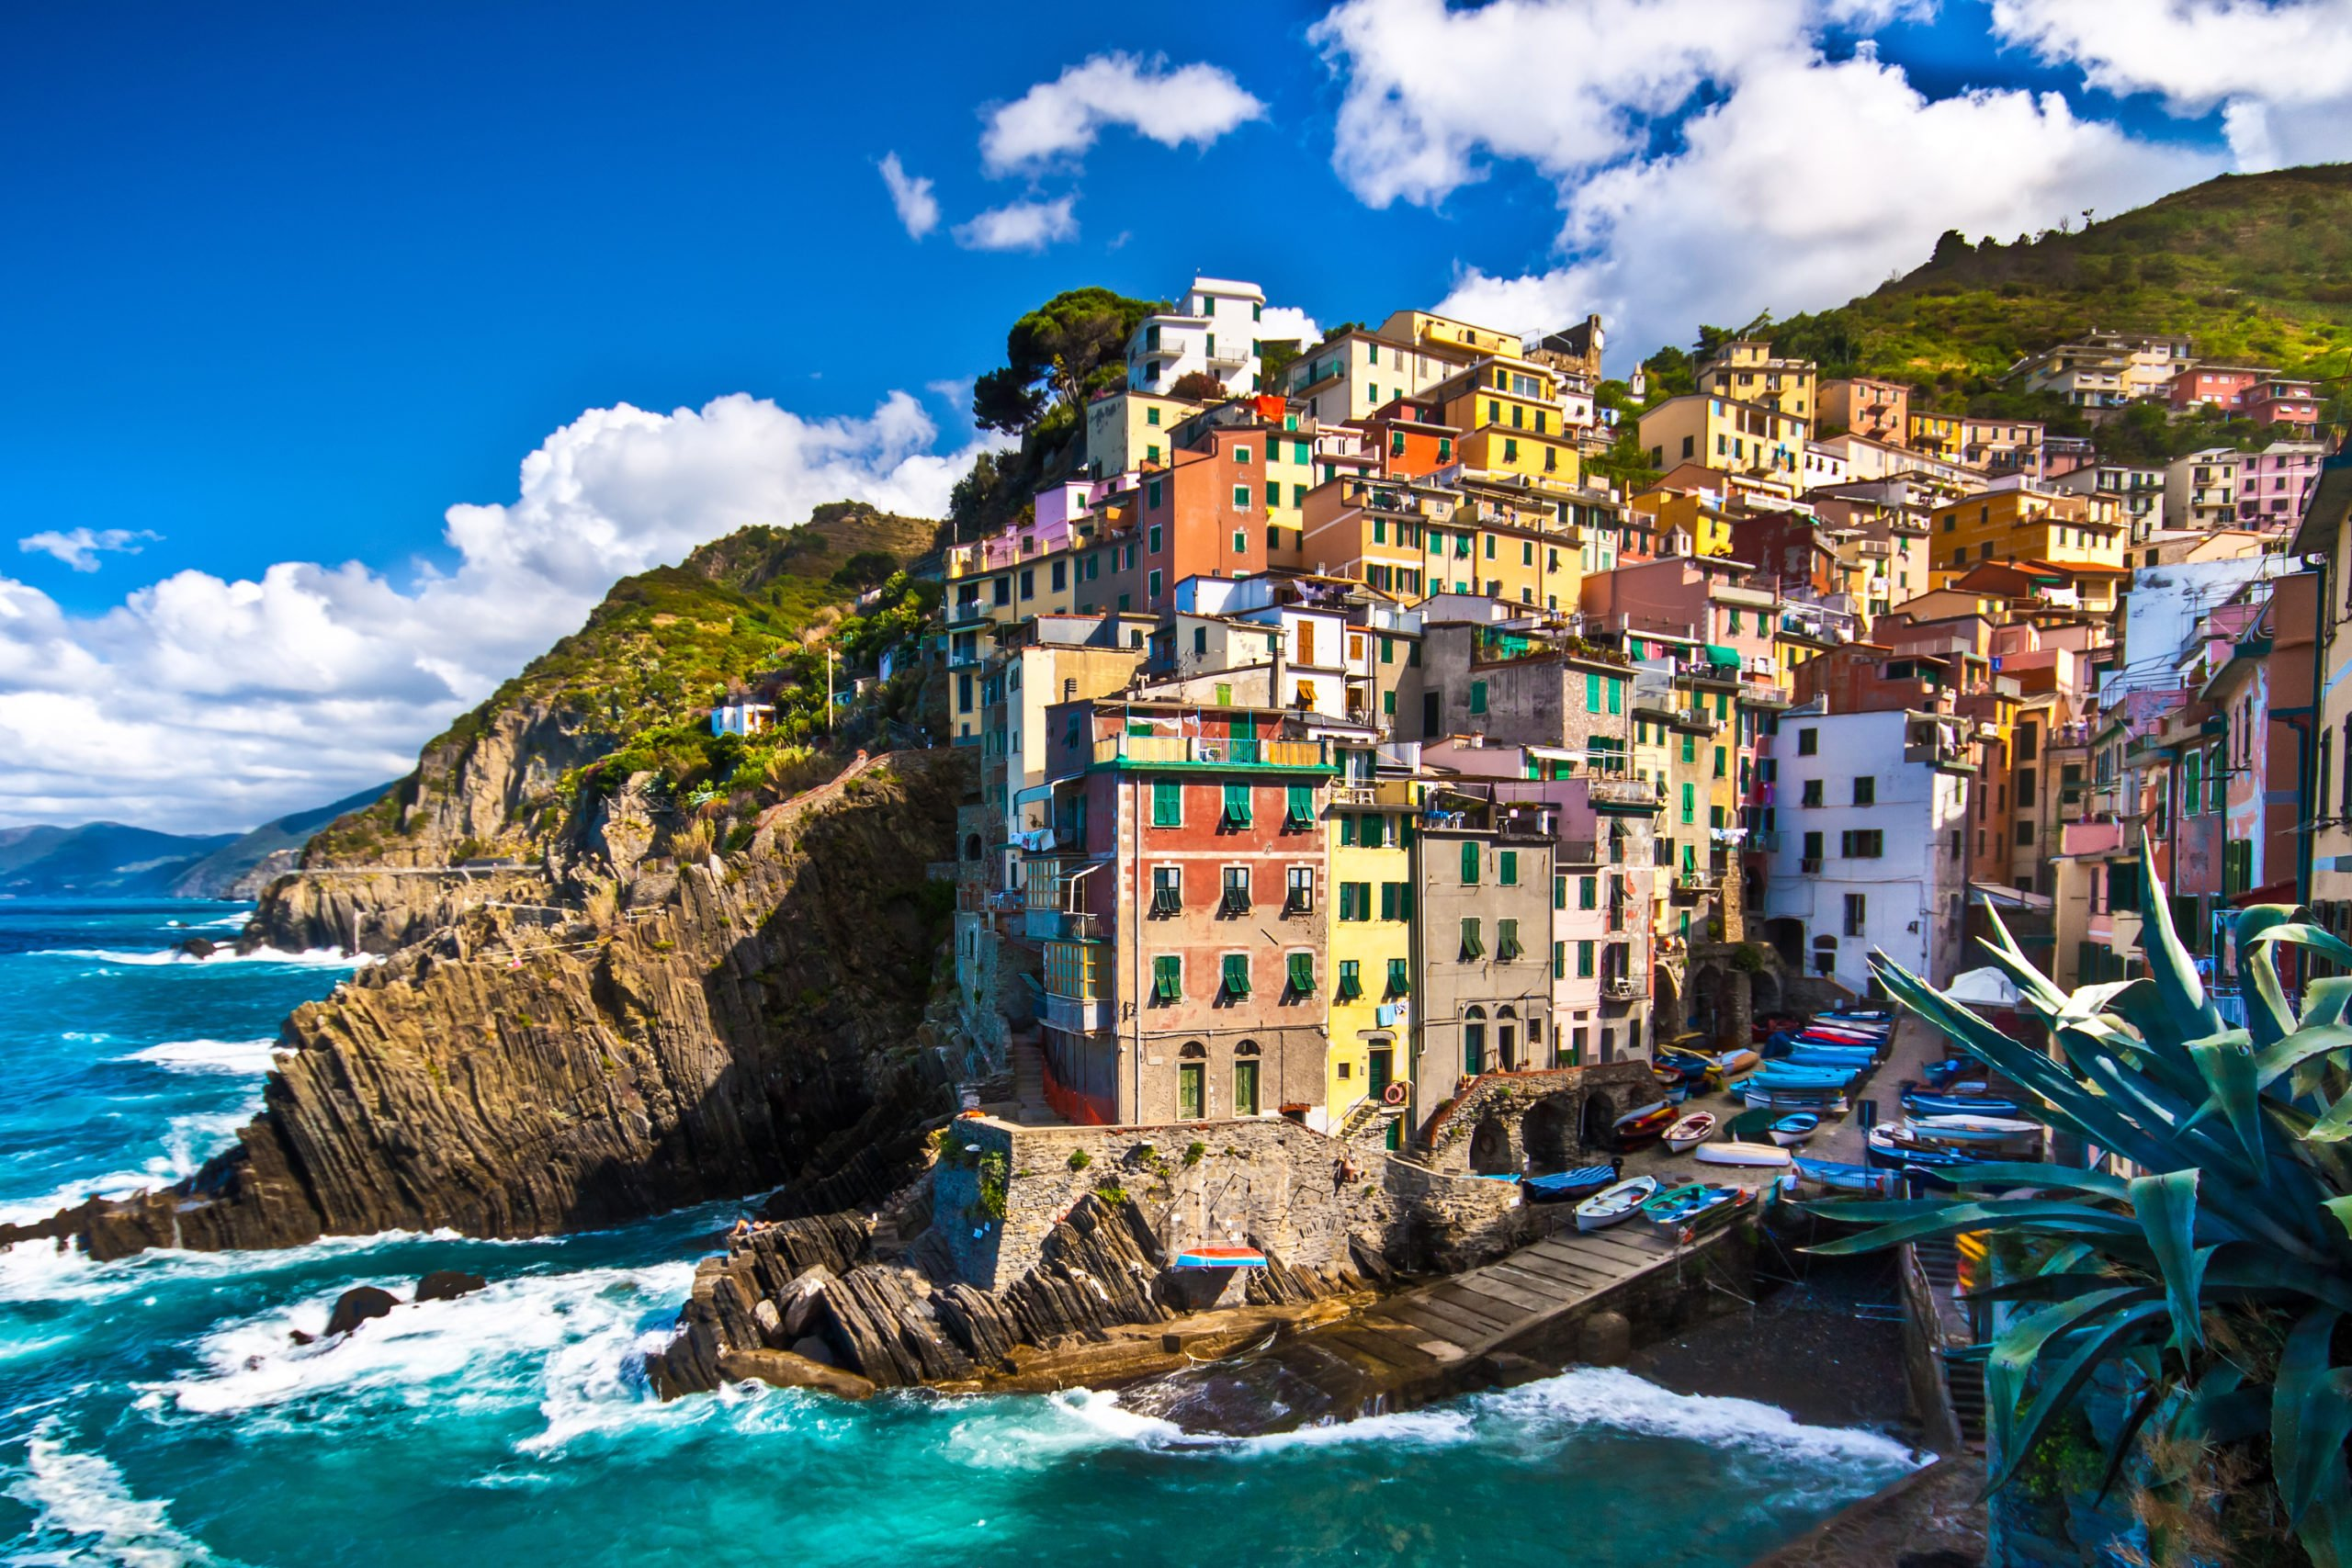 Discover The Famous Colorful Villages On The Cinque Terre Hiking Day Tour From Florence